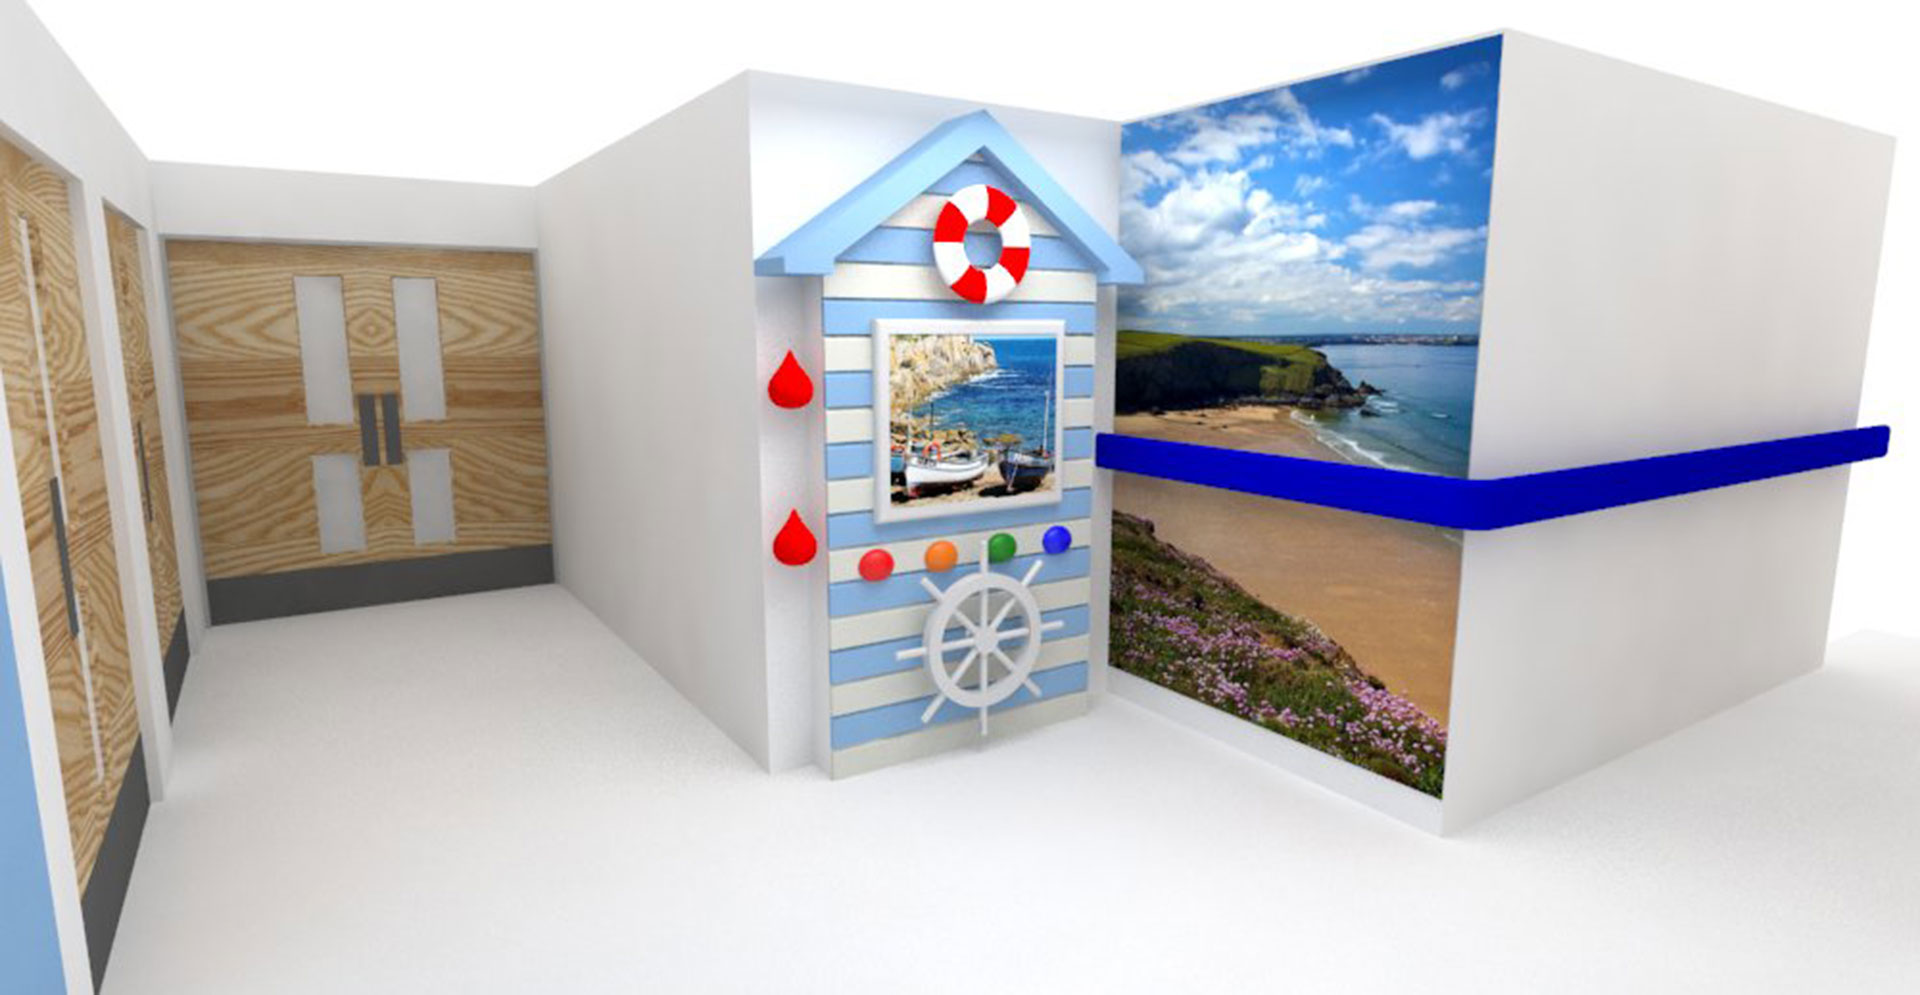 Interactive Beach Hut for patients at Dementia Ward